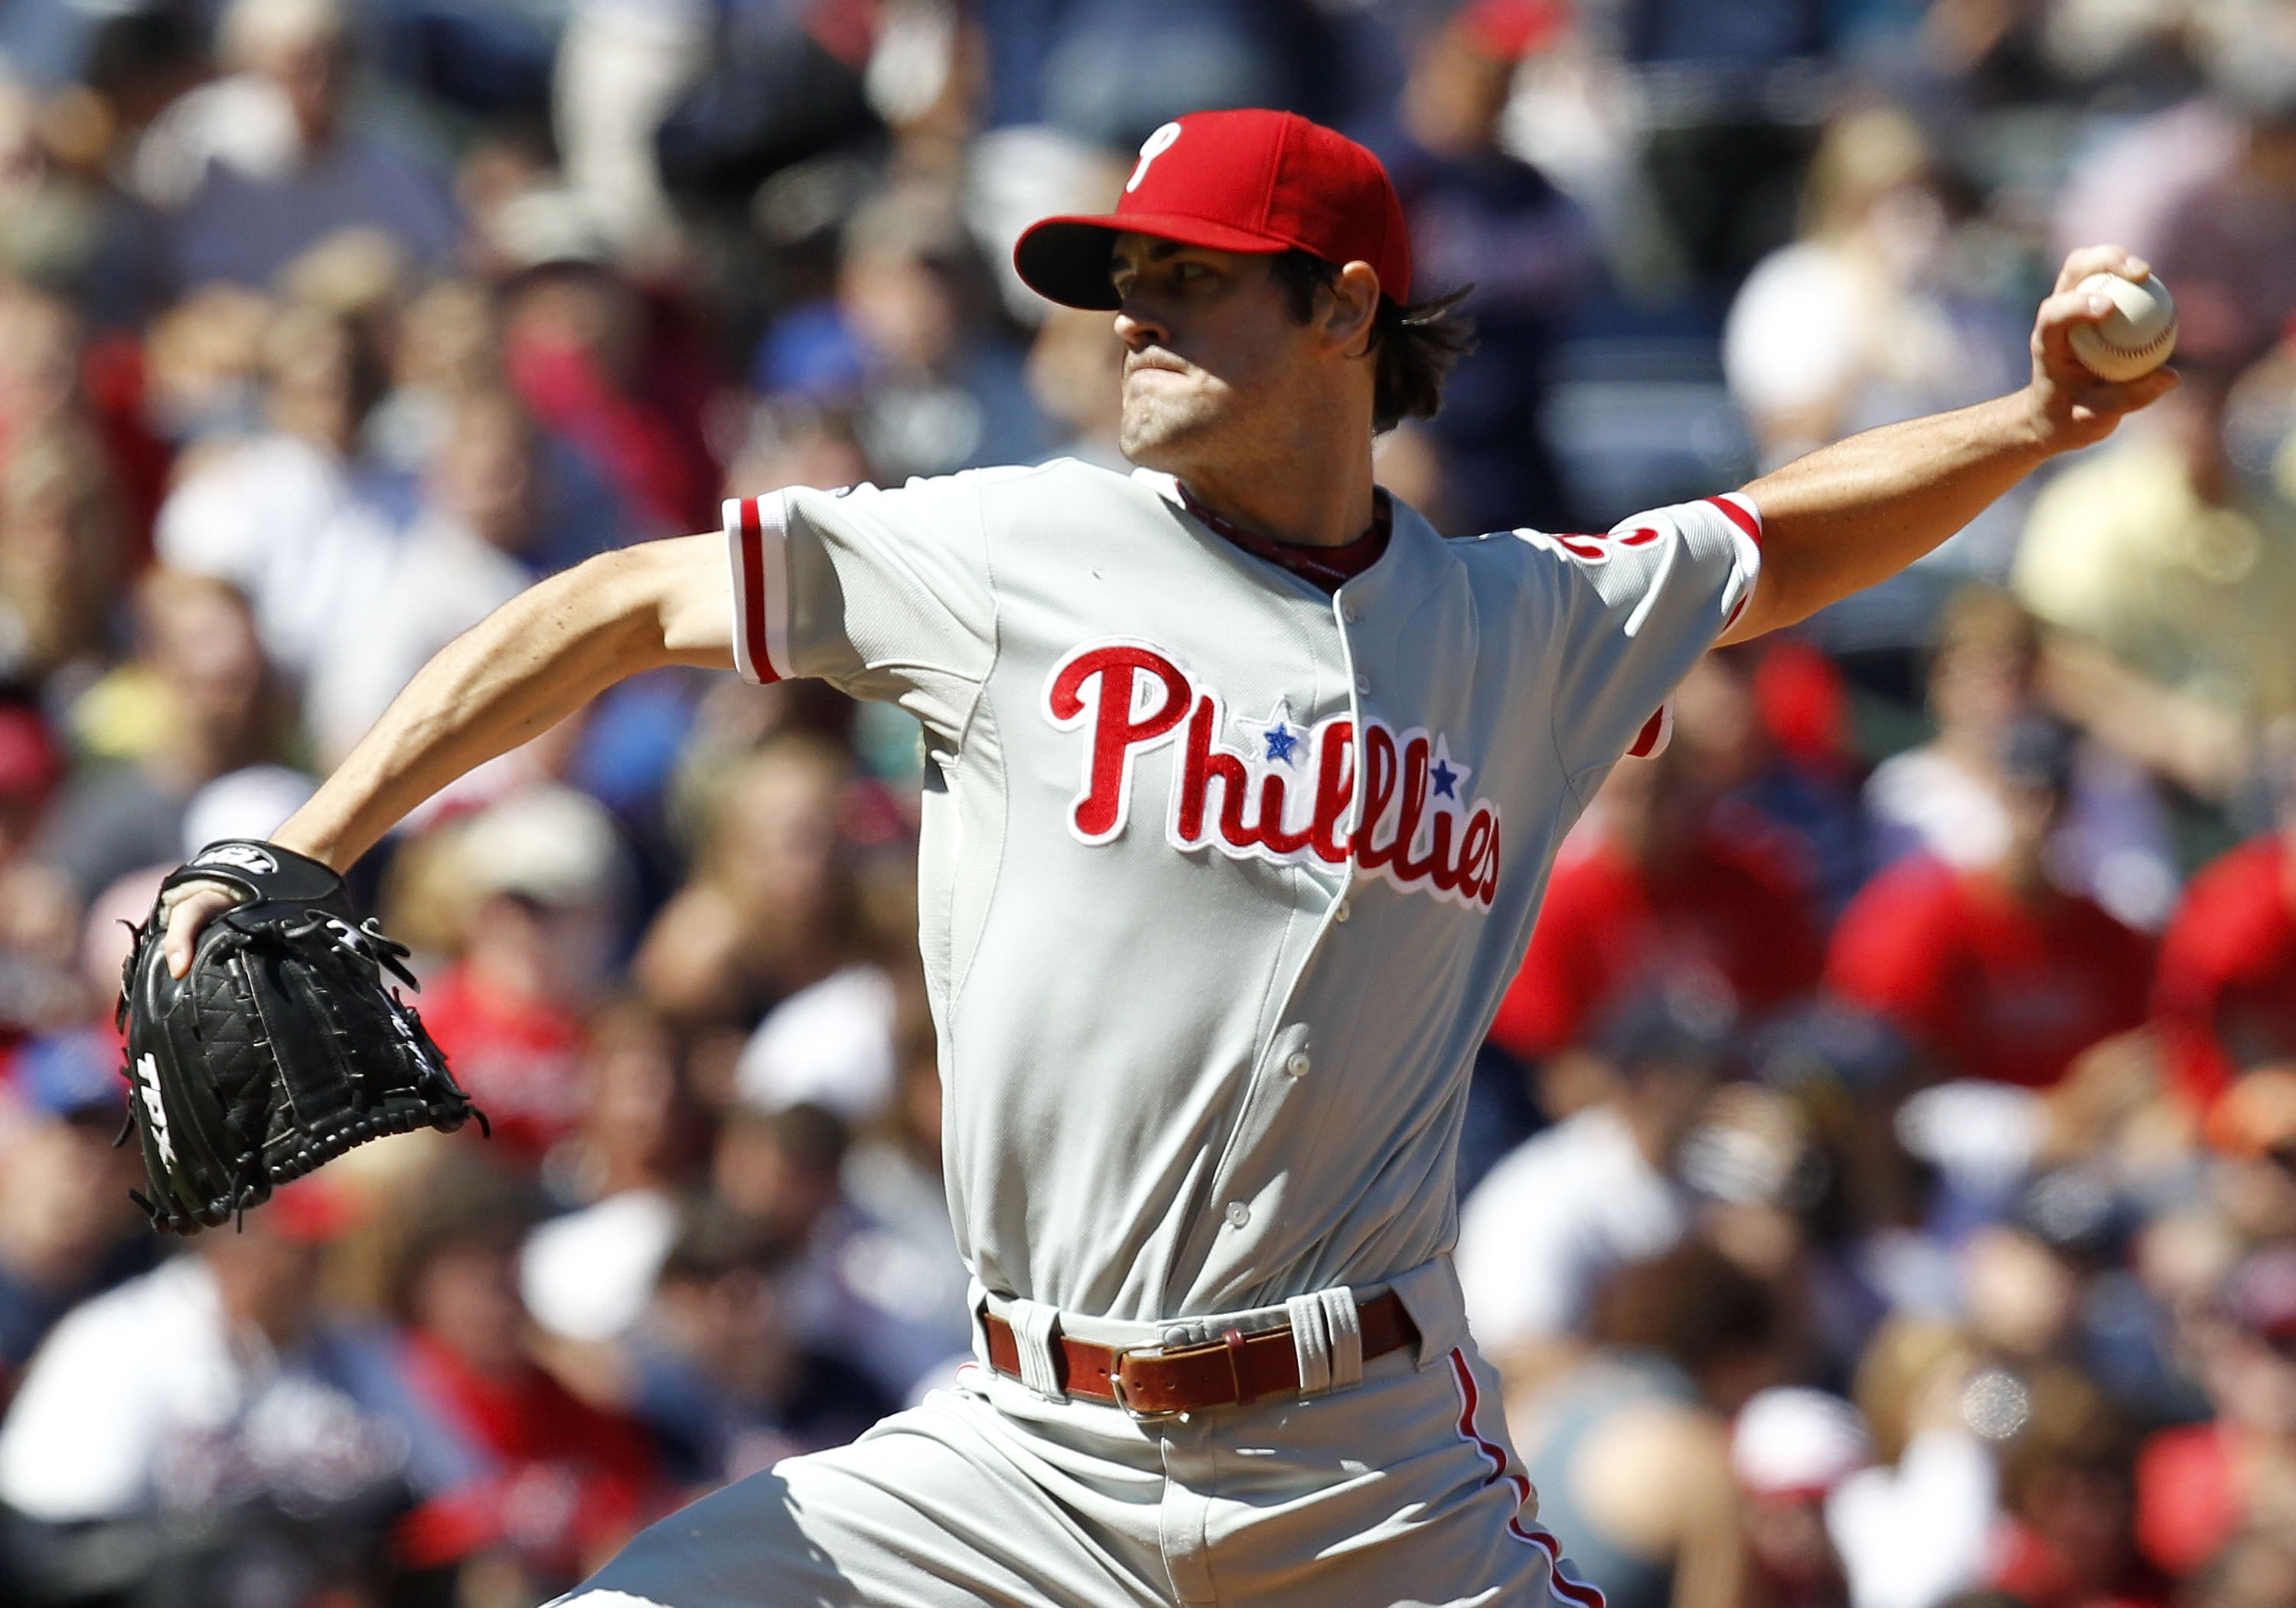 ATLANTA - OCTOBER 3:  Pitcher Cole Hamels #35 of the Philadelphia Phillies throws a pitch during the game against the Atlanta Braves at Turner Field on October 3, 2010 in Atlanta, Georgia. The Braves beat the Phillies 8-7.  (Photo by Mike Zarrilli/Getty I